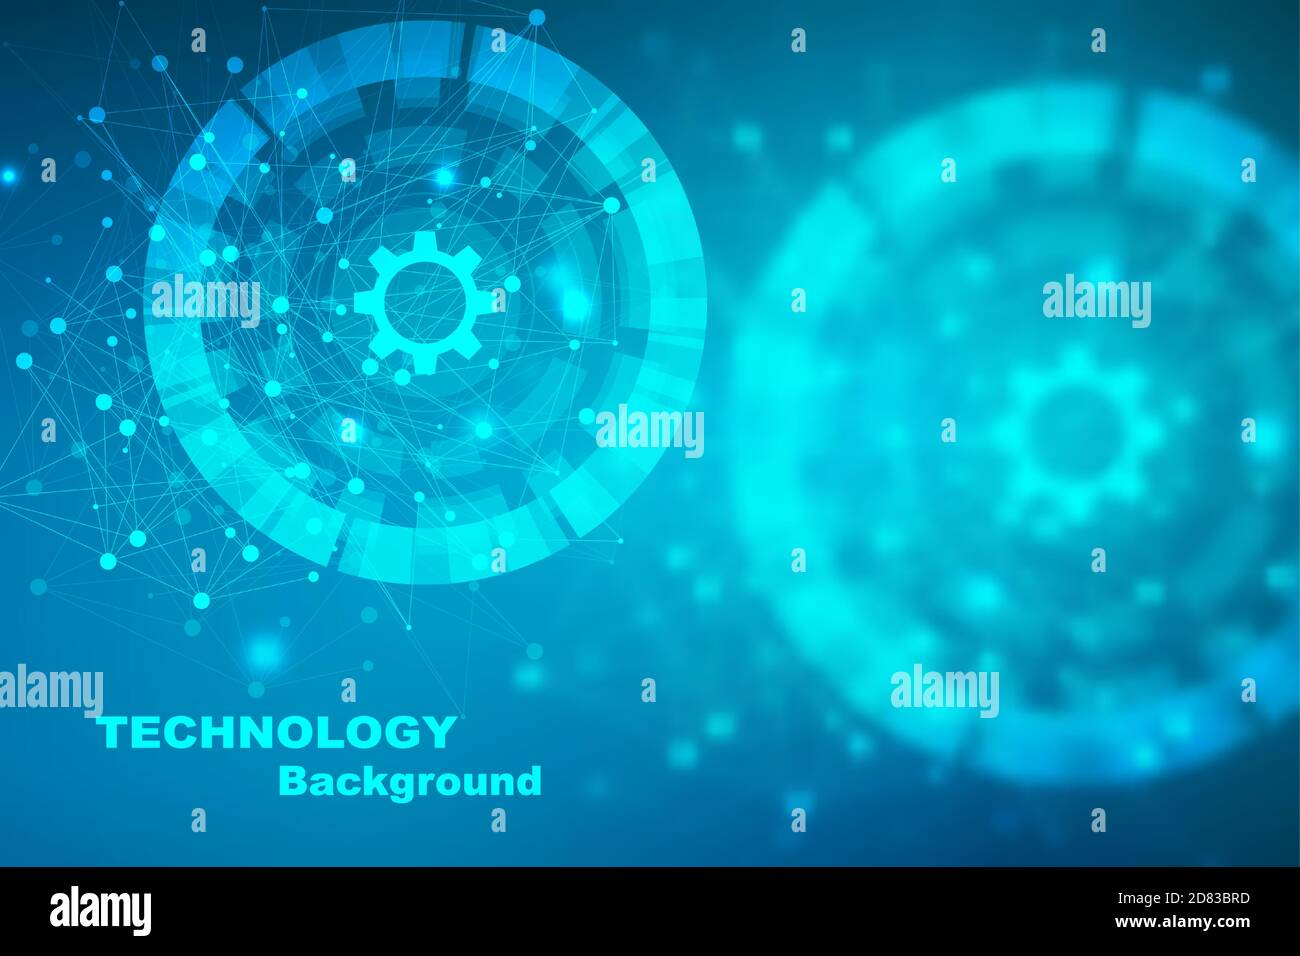 Big Data Visualization Background. Modern futuristic virtual abstract background. Science network pattern, connecting lines and dots. Global network Stock Vector